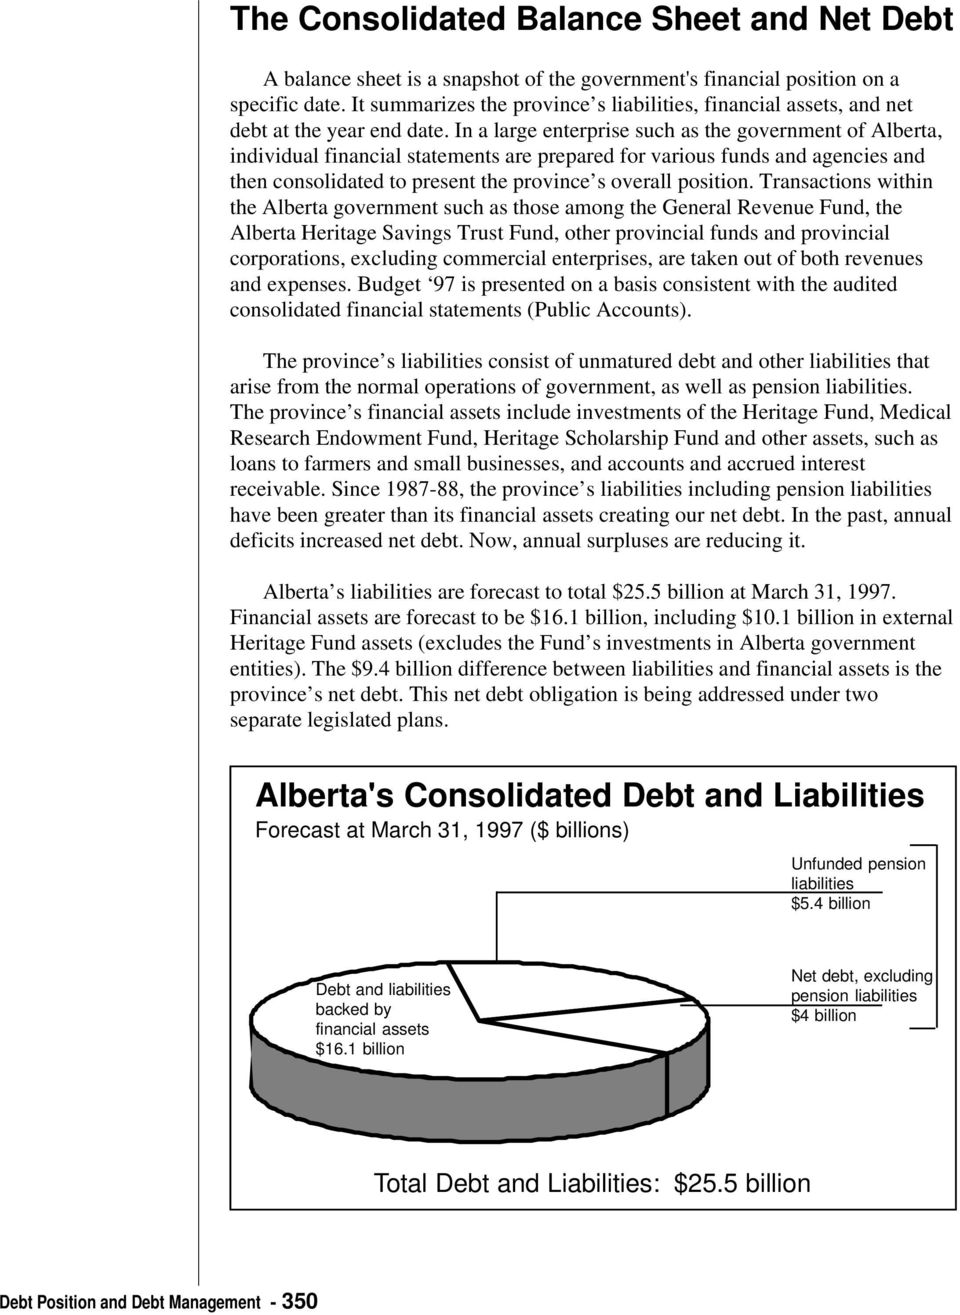 In a large enterprise such as the government of Alberta, individual financial statements are prepared for various funds and agencies and then consolidated to present the province s overall position.